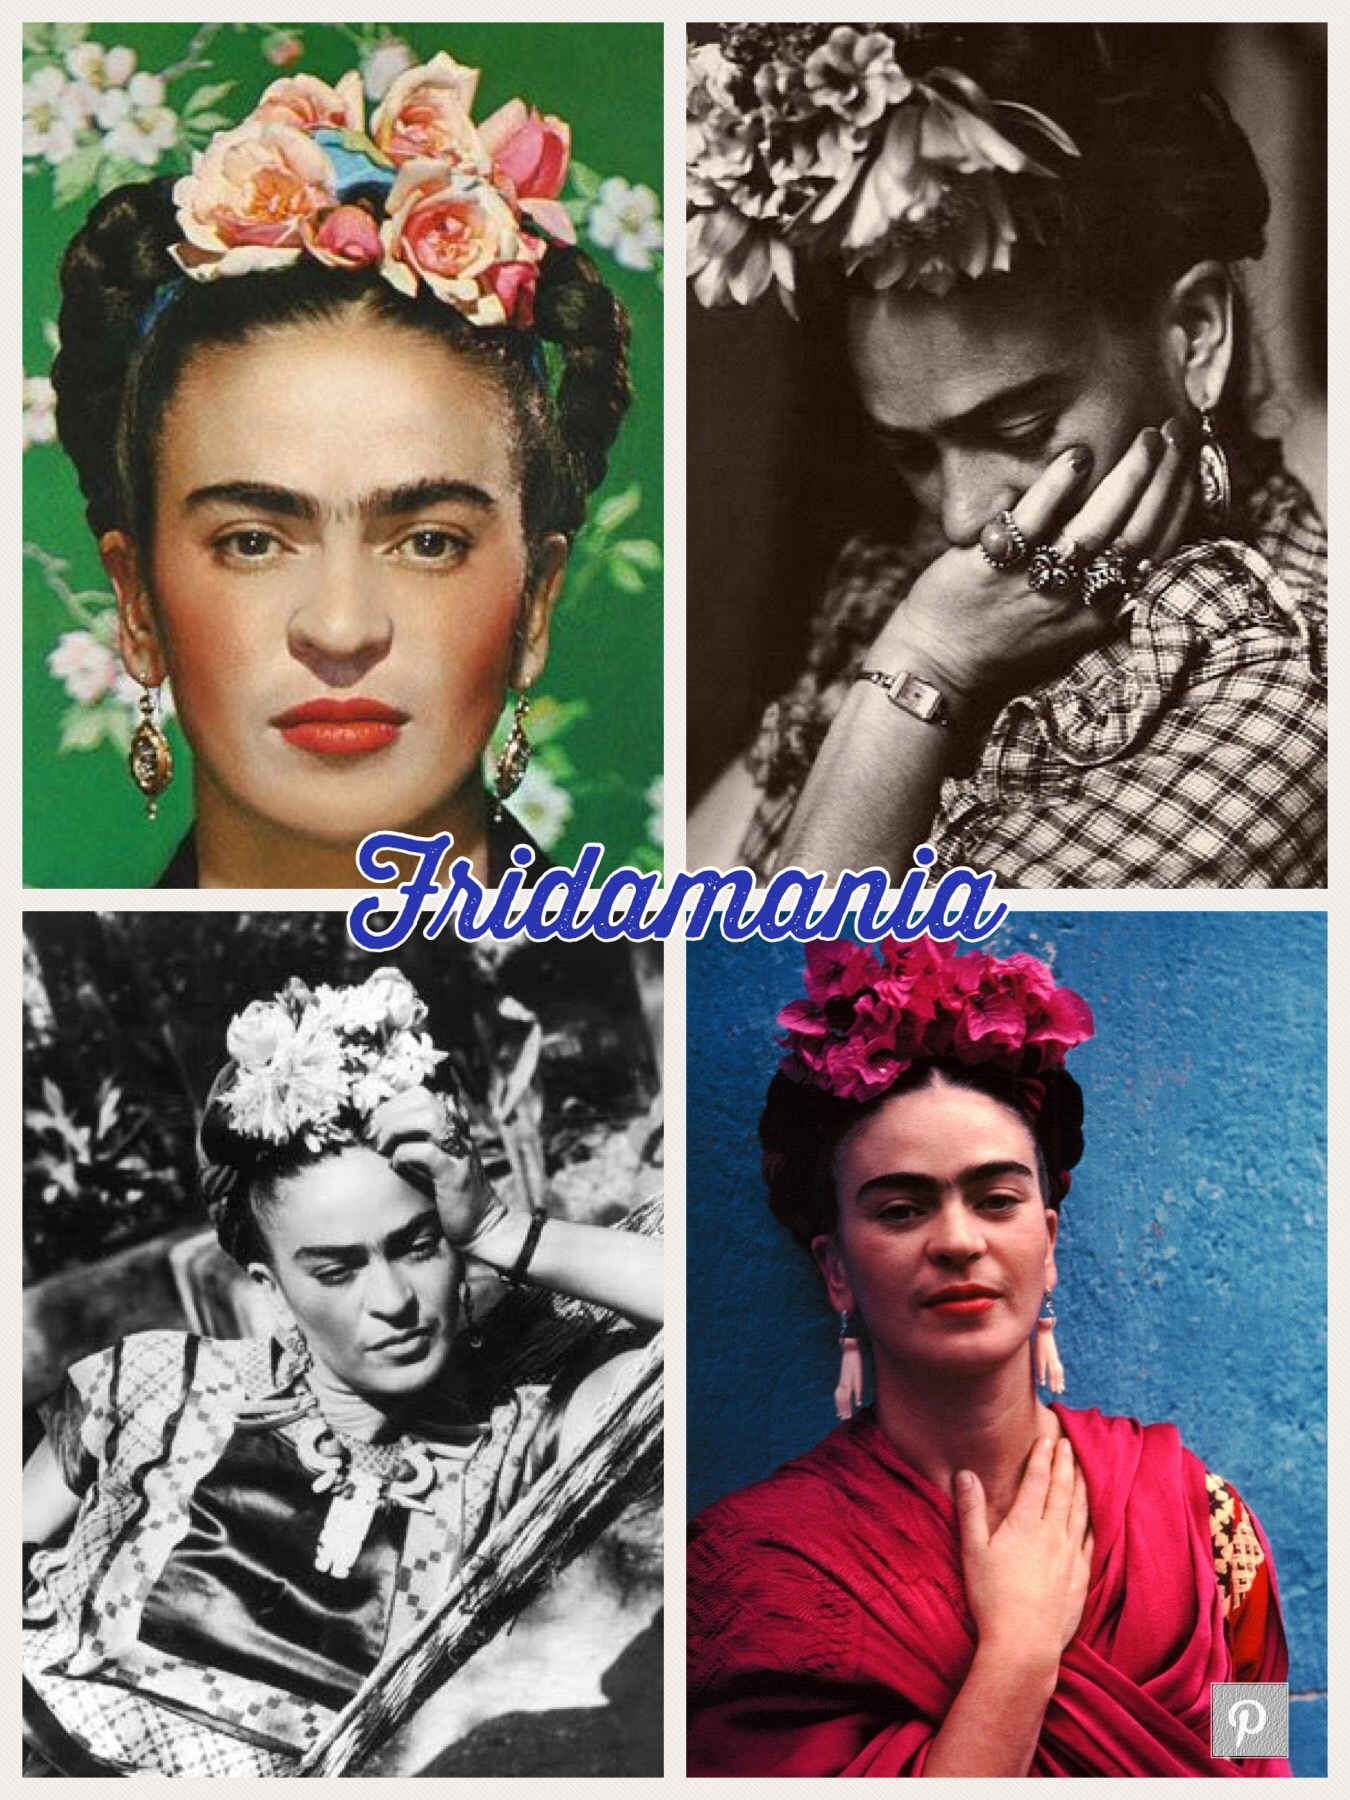 Frida Kahlo Addiction